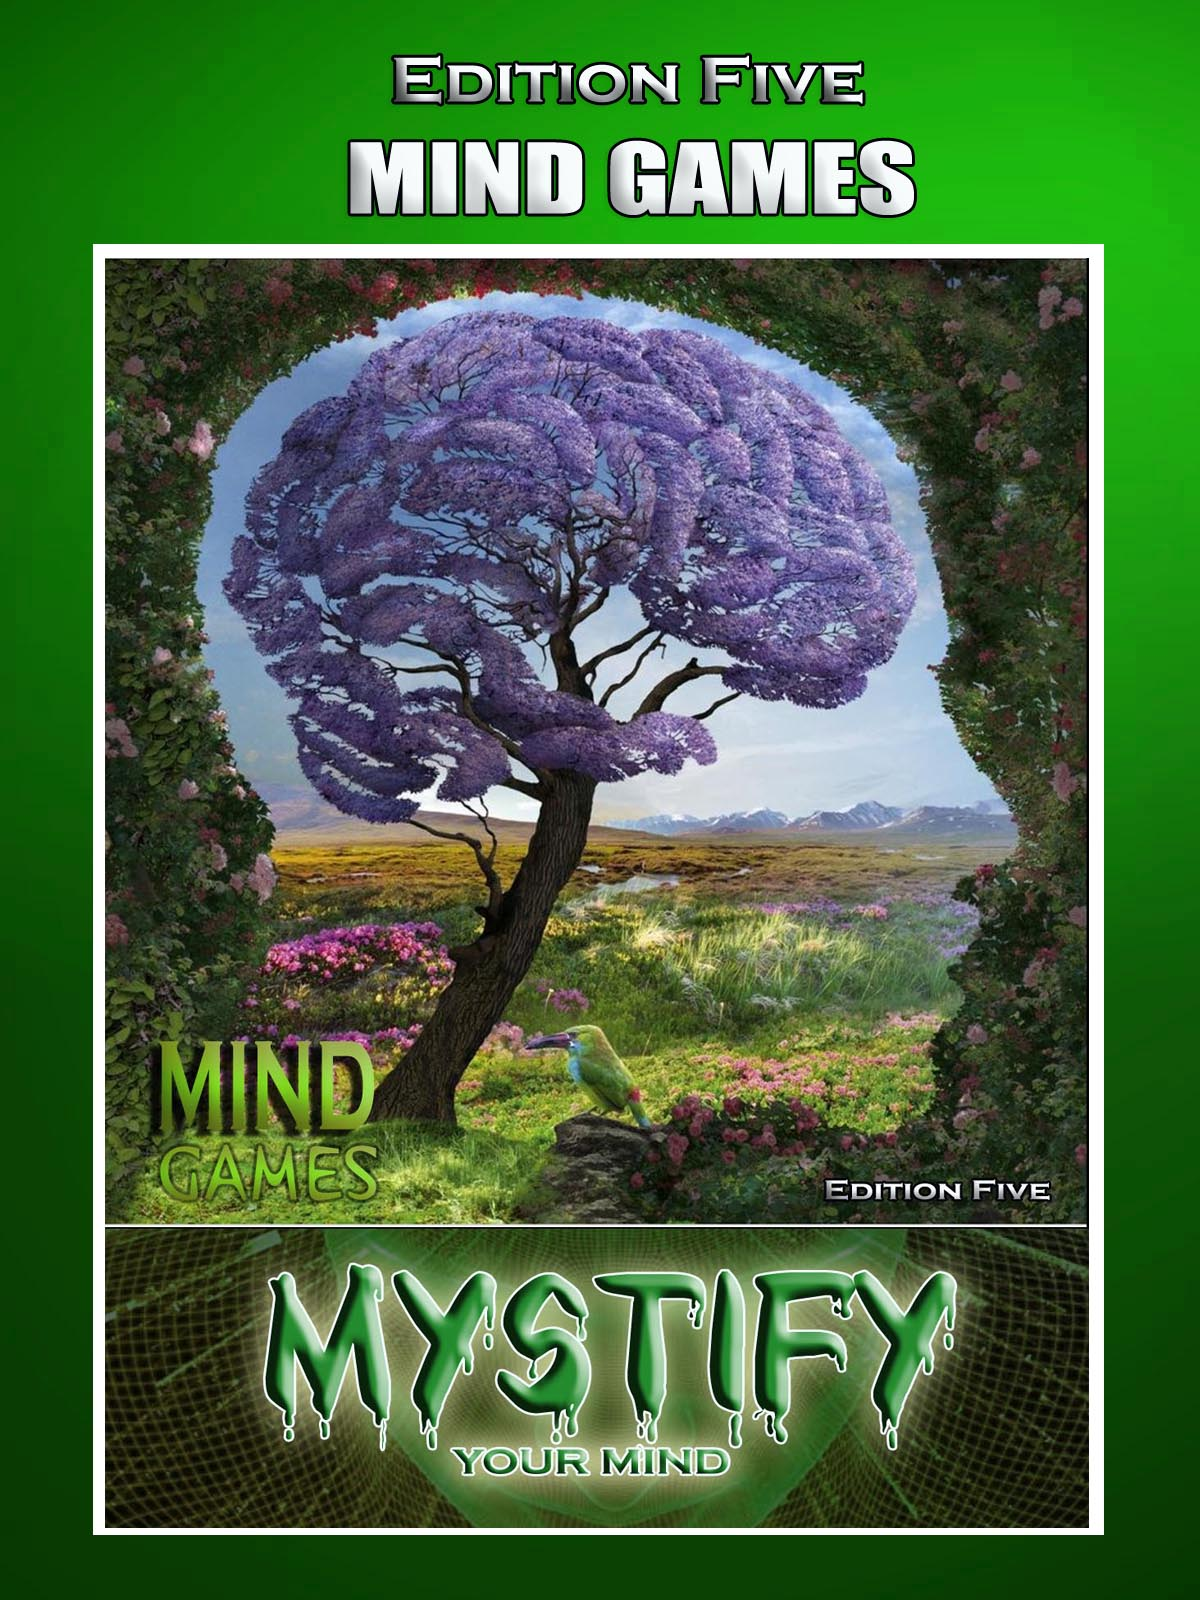 Mystify your Mind